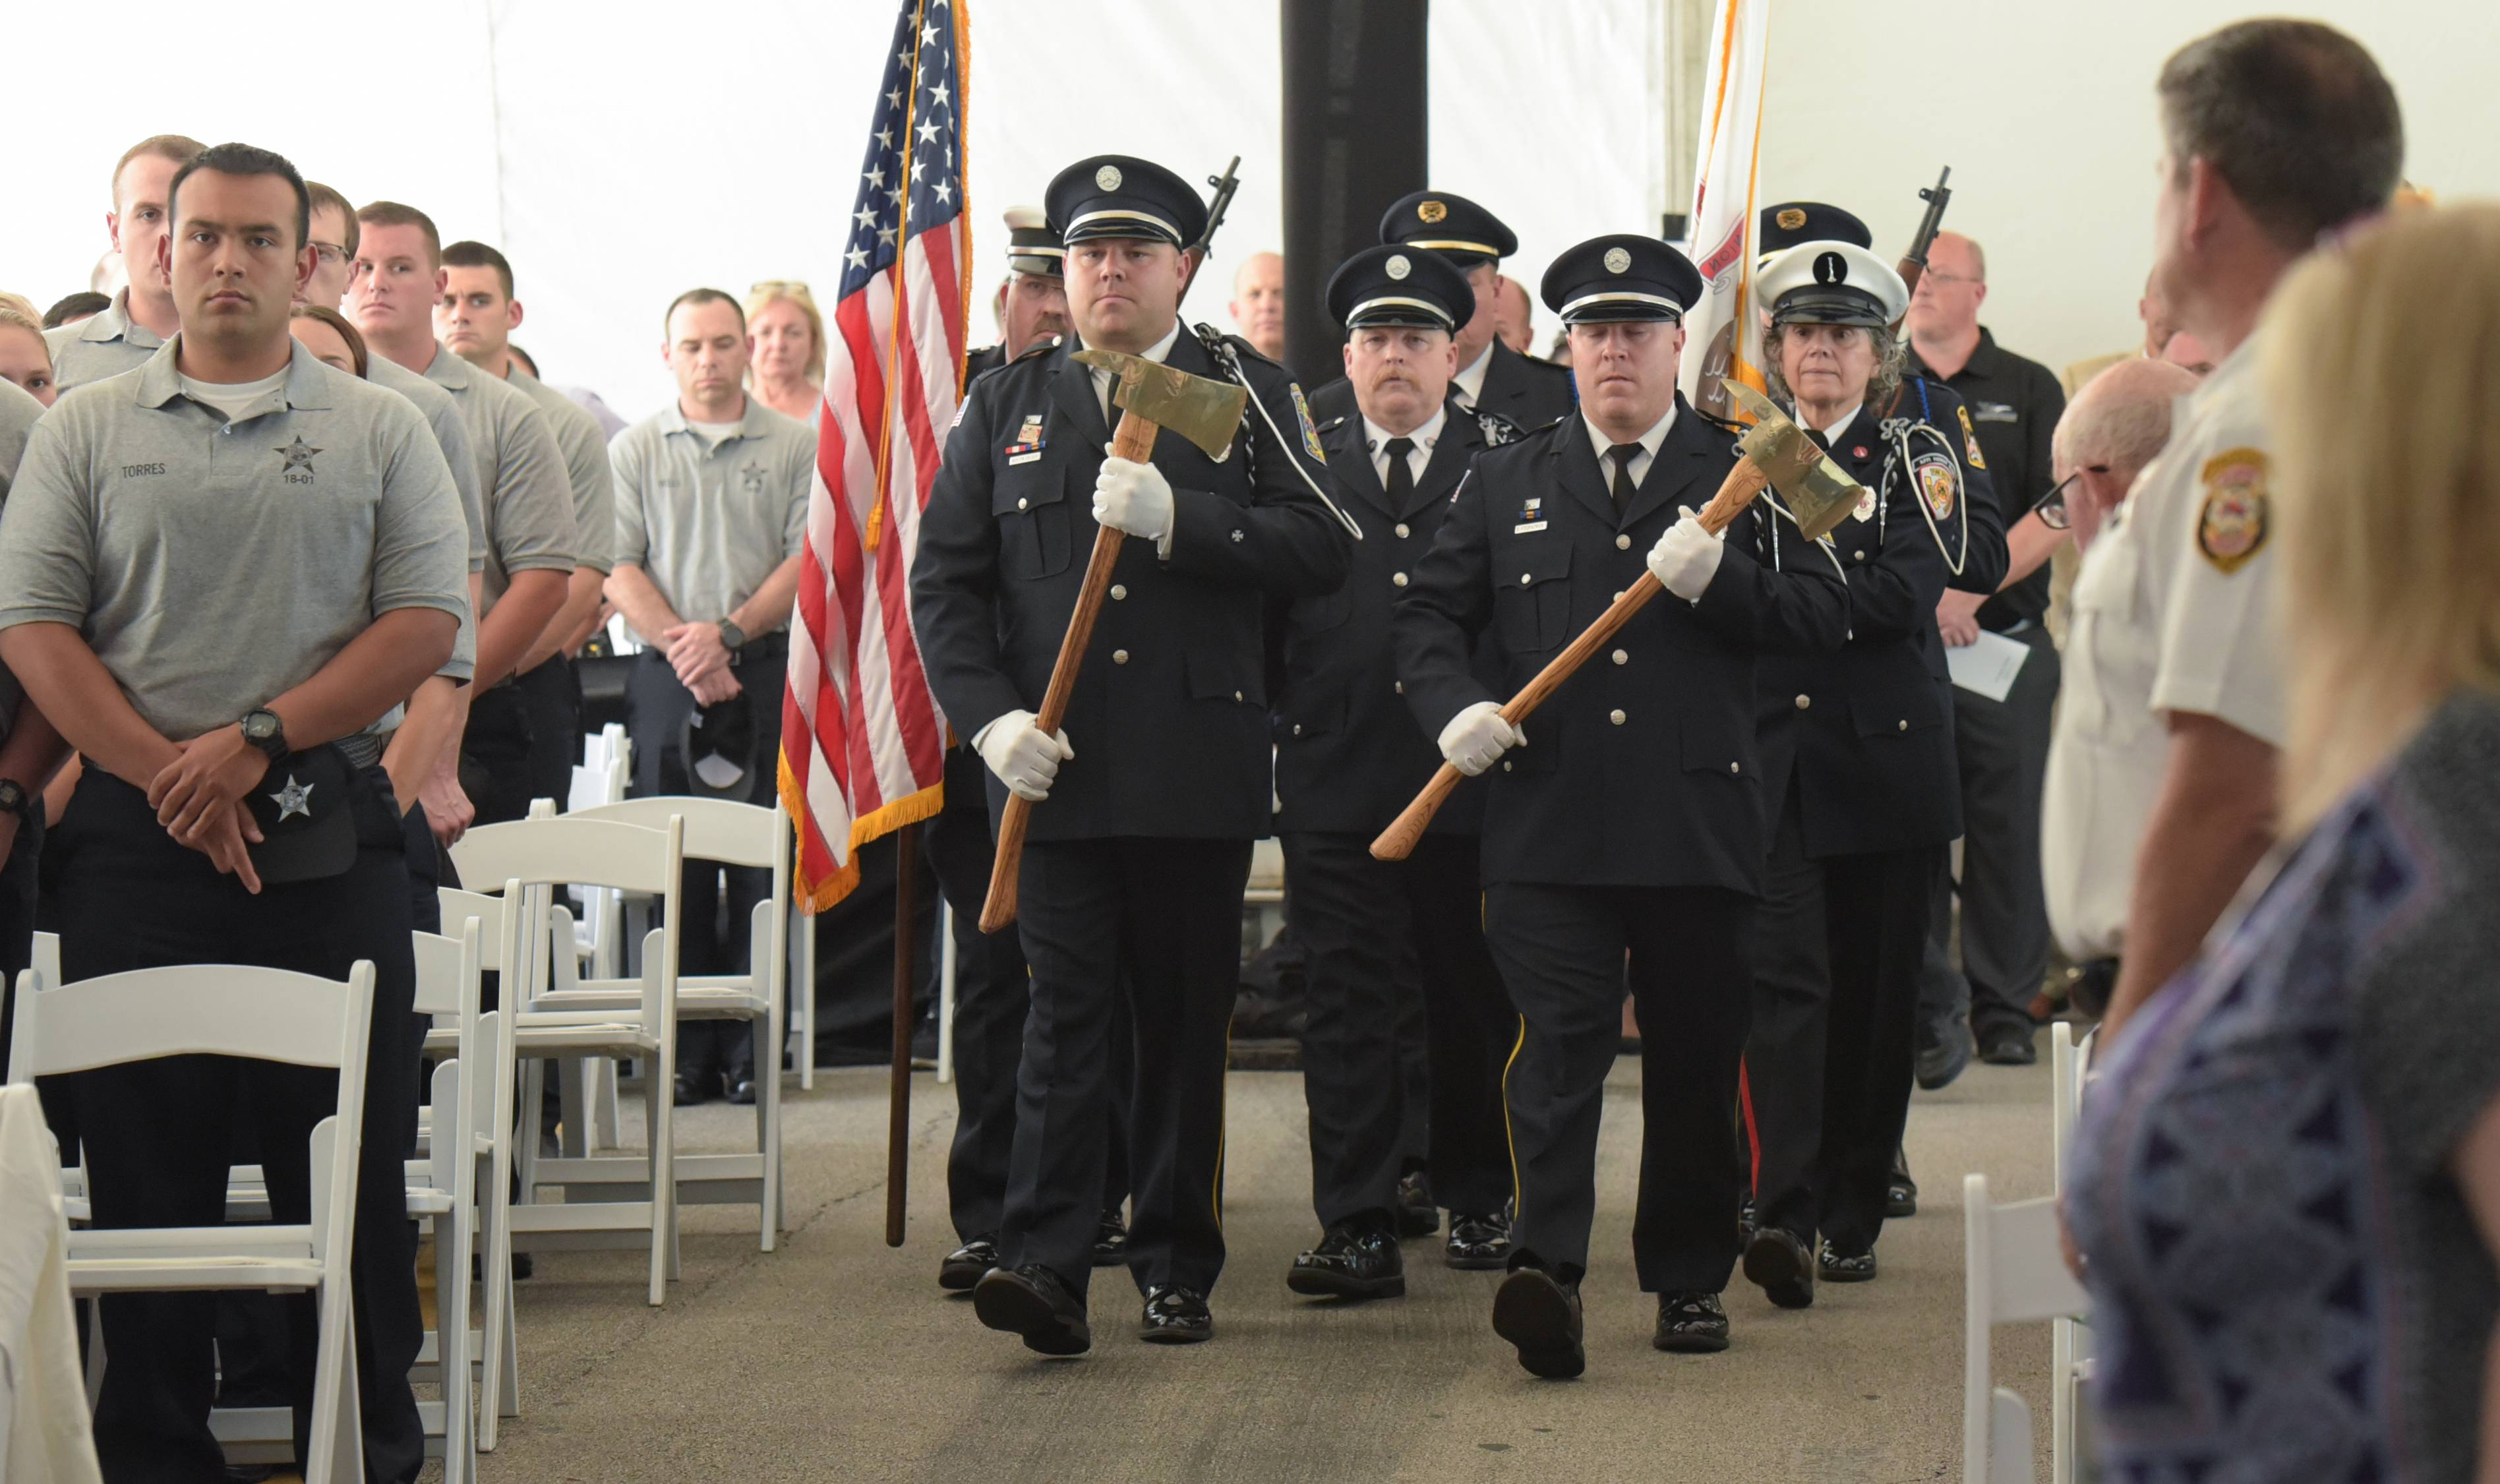 Members of the Lisle-Woodridge Fire District, Darien-Woodridge Fire District and Woodridge Police Department present the colors during the ceremony Thursday.